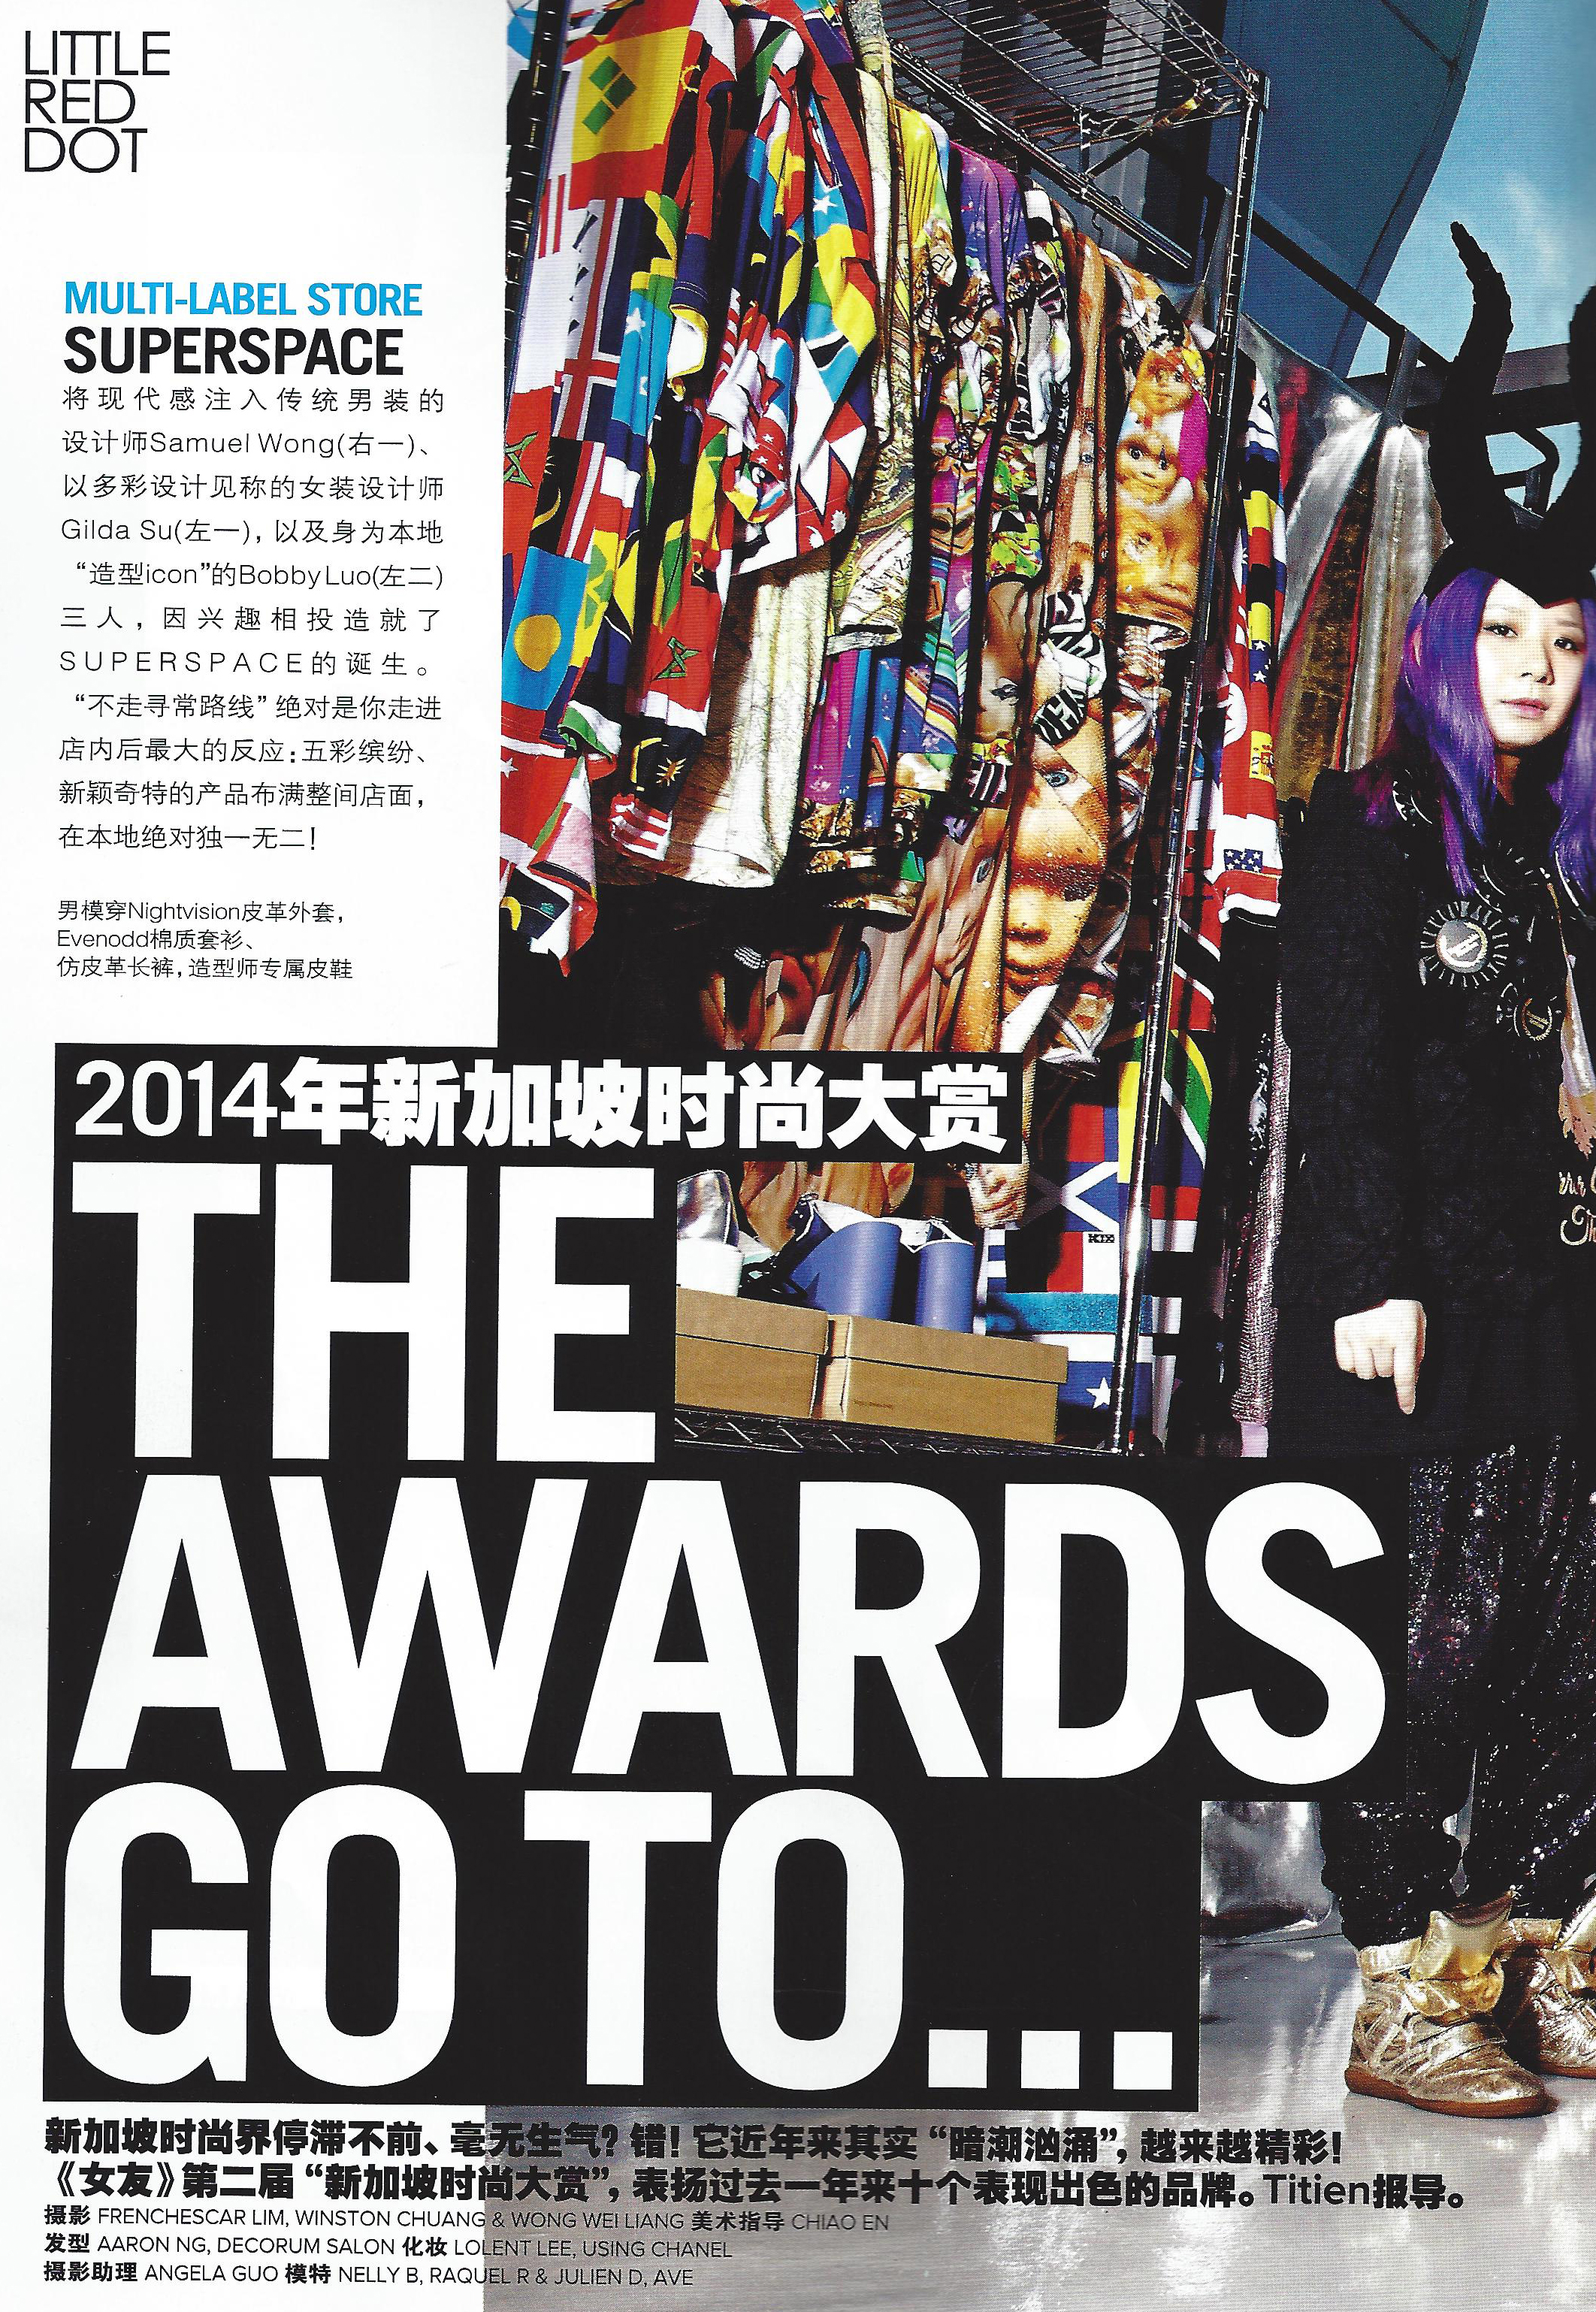 Nuyou 10 Best Aug 2014 01 SUPERSPACE